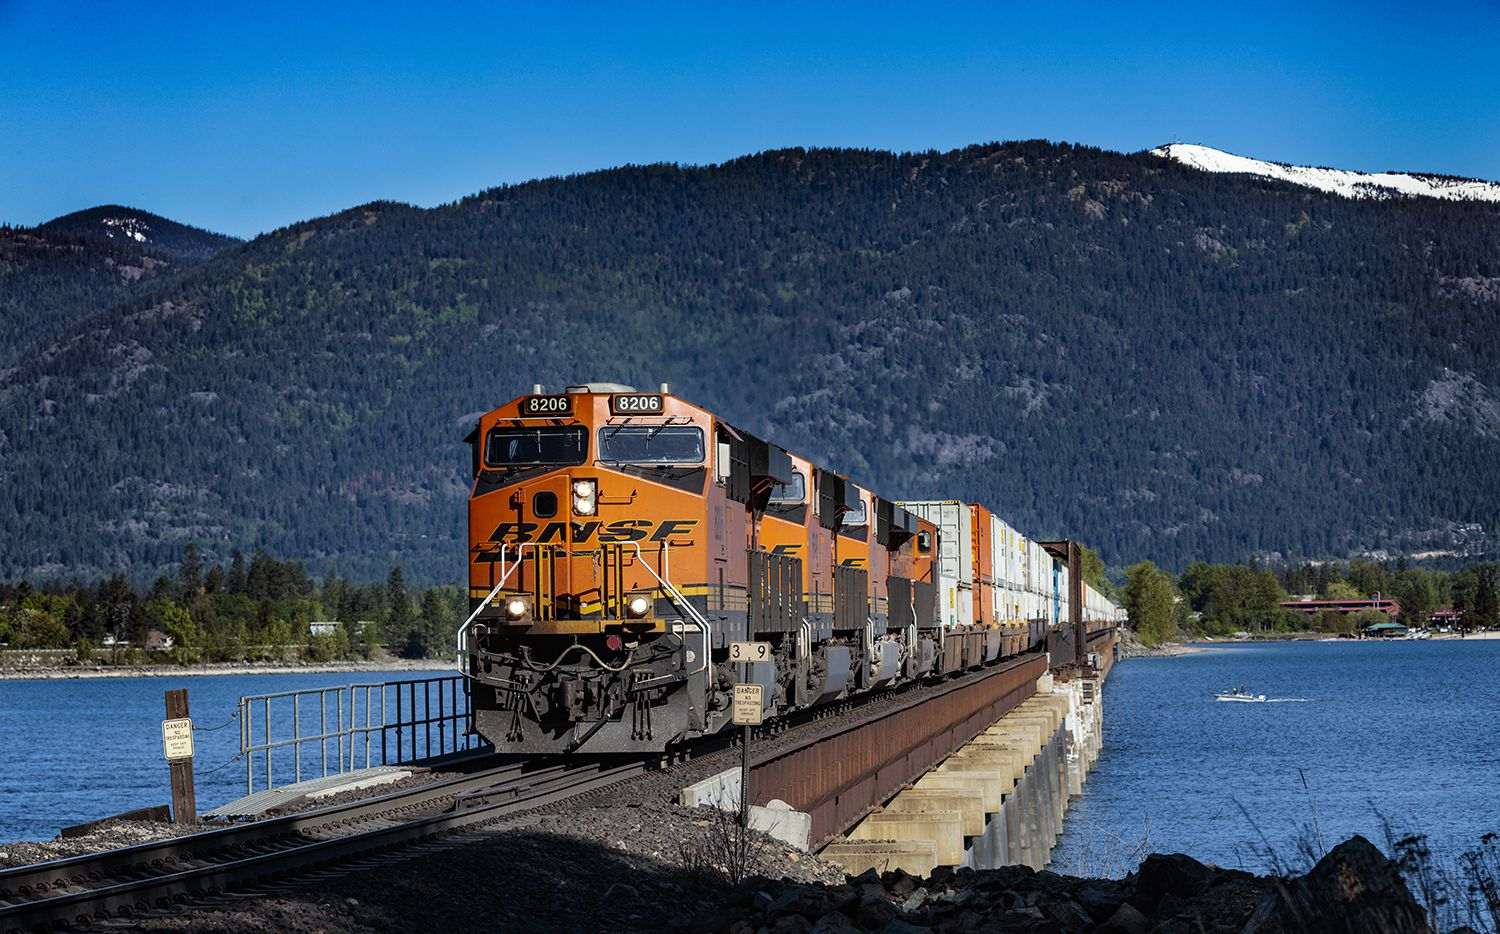 BNSF Railway operates one of the largest rail networks in North America, yet it's had to reduce its workforce due to COVID-related shipment volume declines.